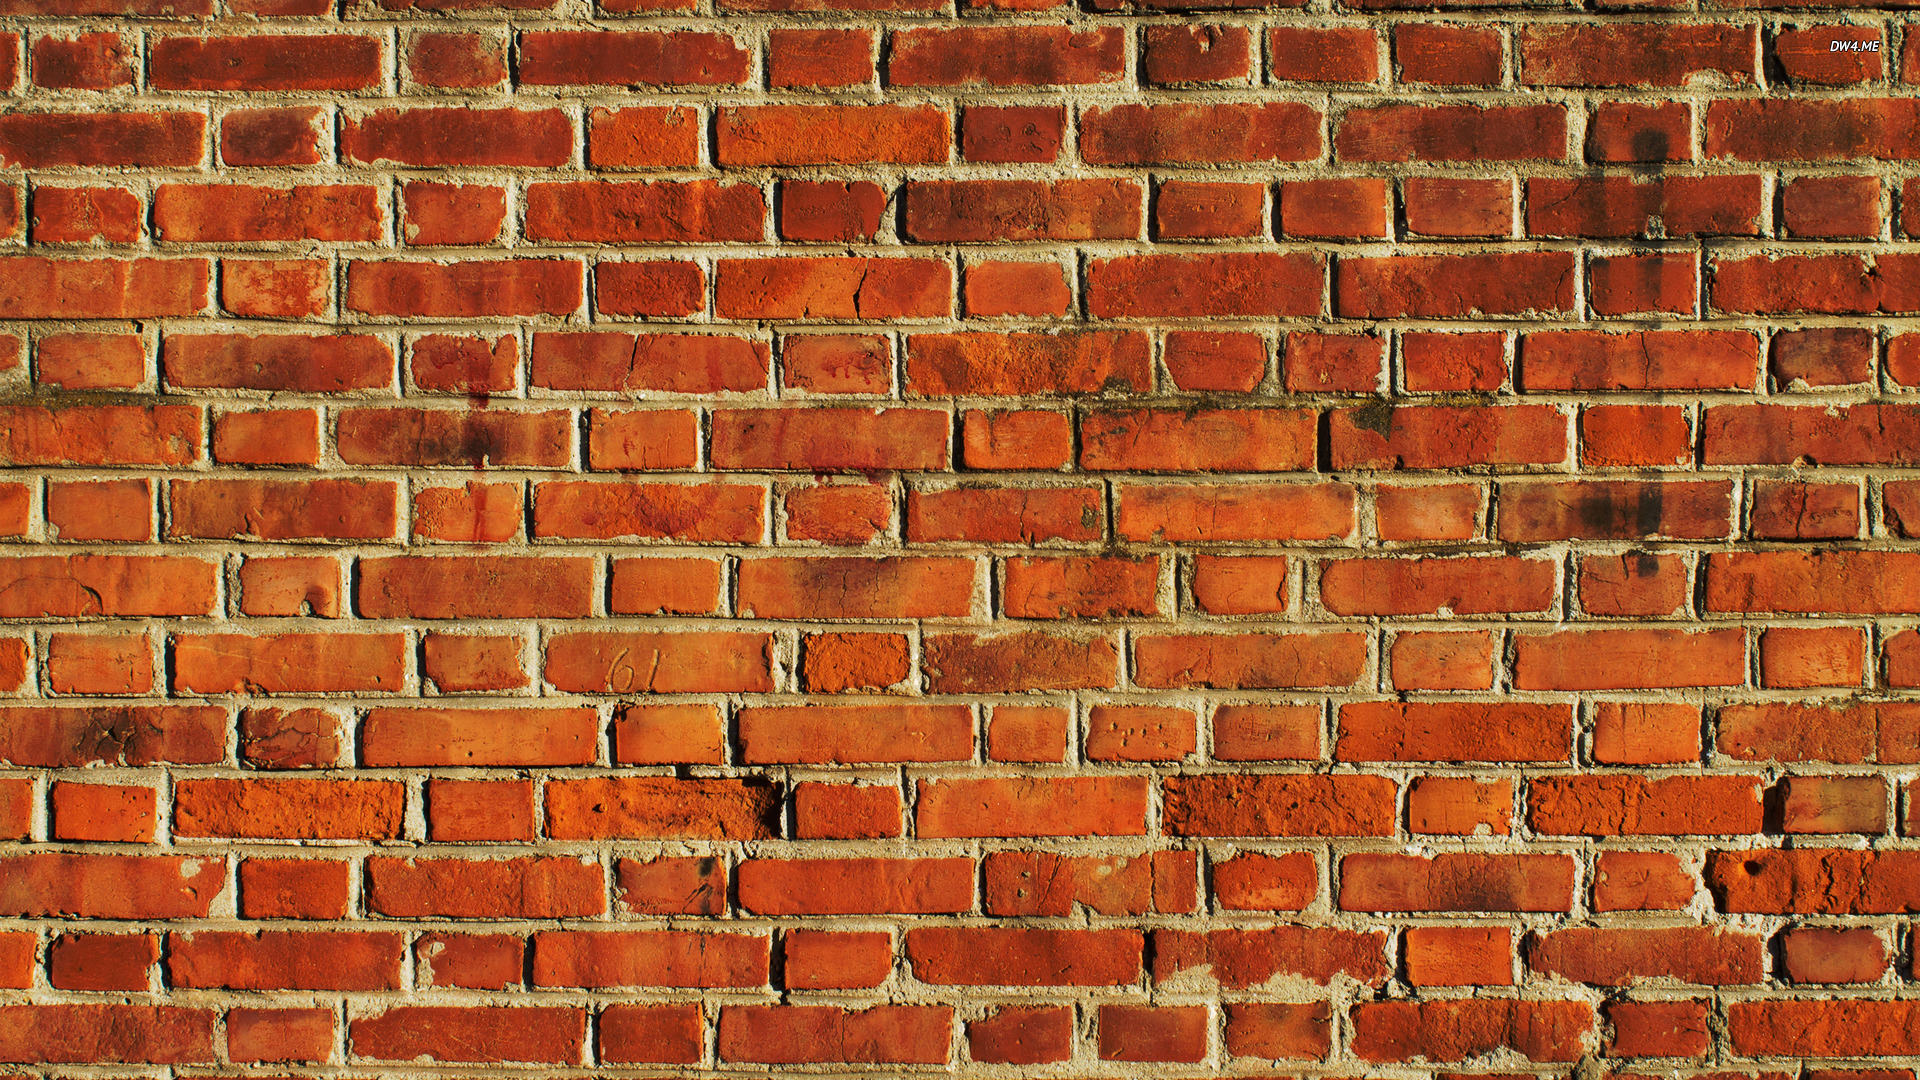 Brick Wall Design 35 43 Brick Wall Backgrounds Psd Vector Eps Jpg Download